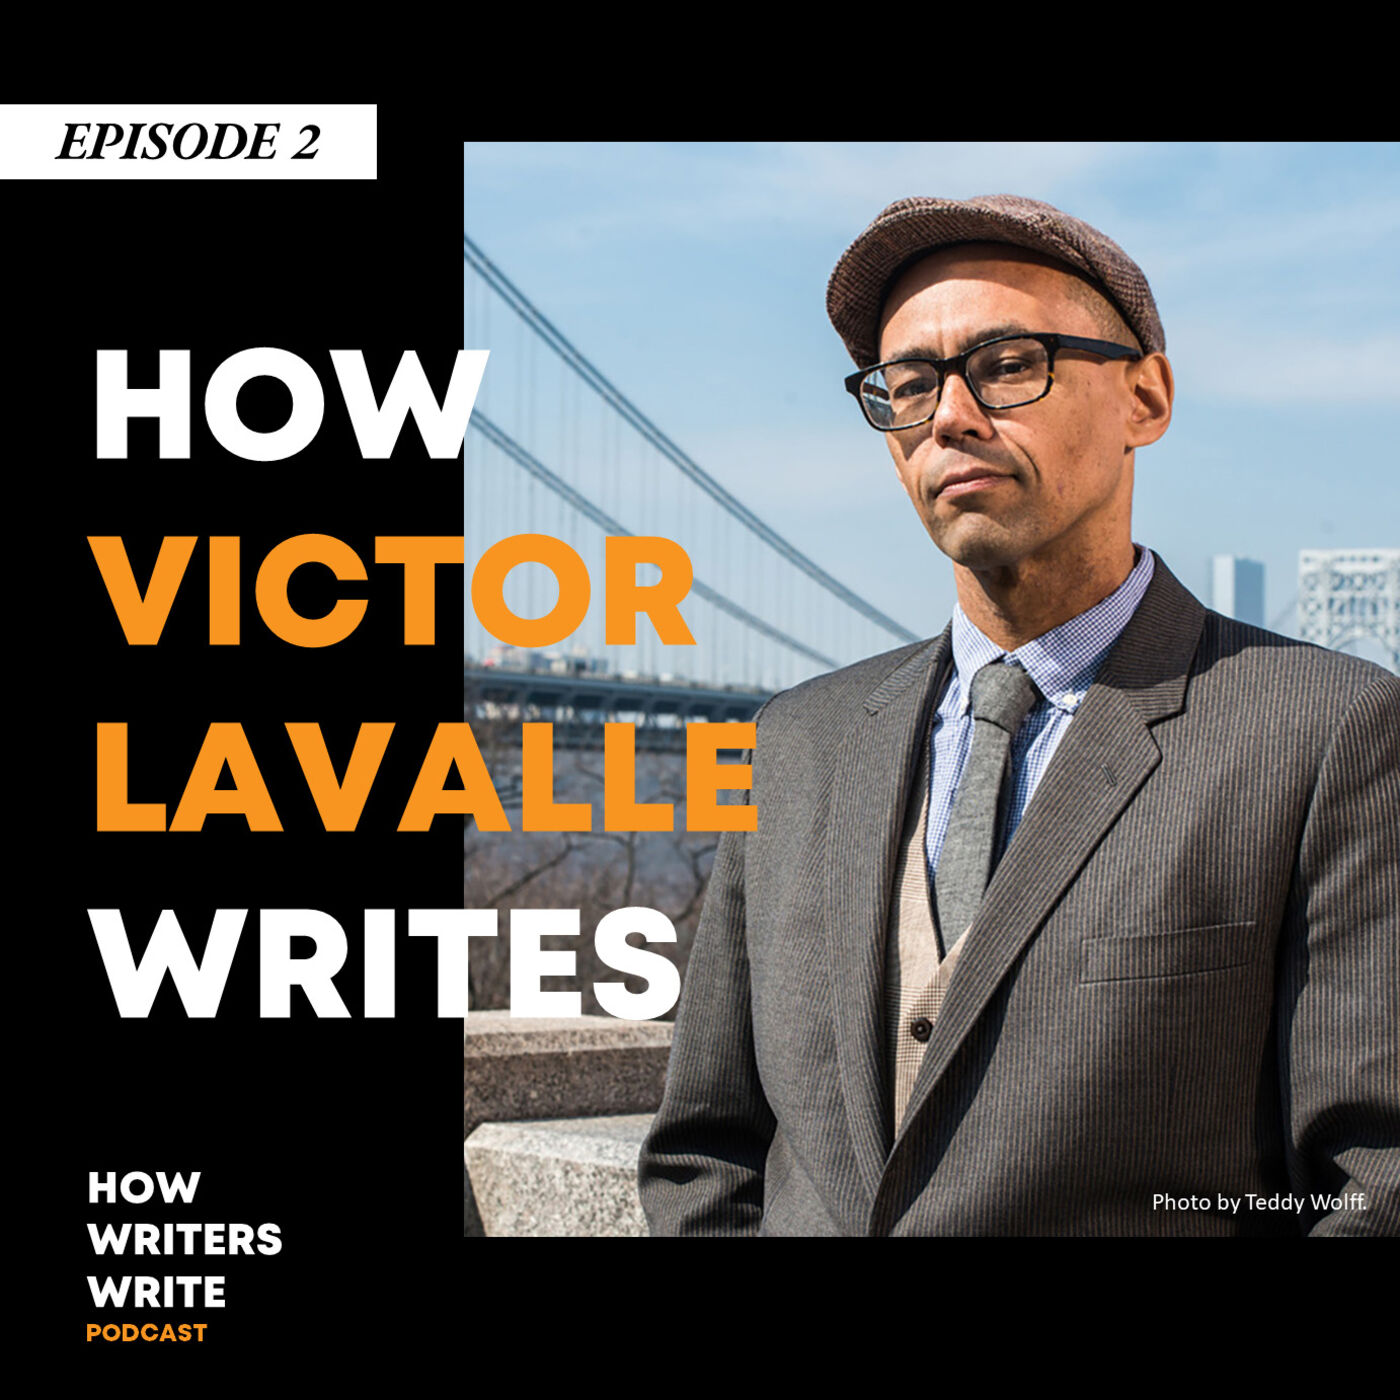 Episode 2- How Victor LaValle Writes